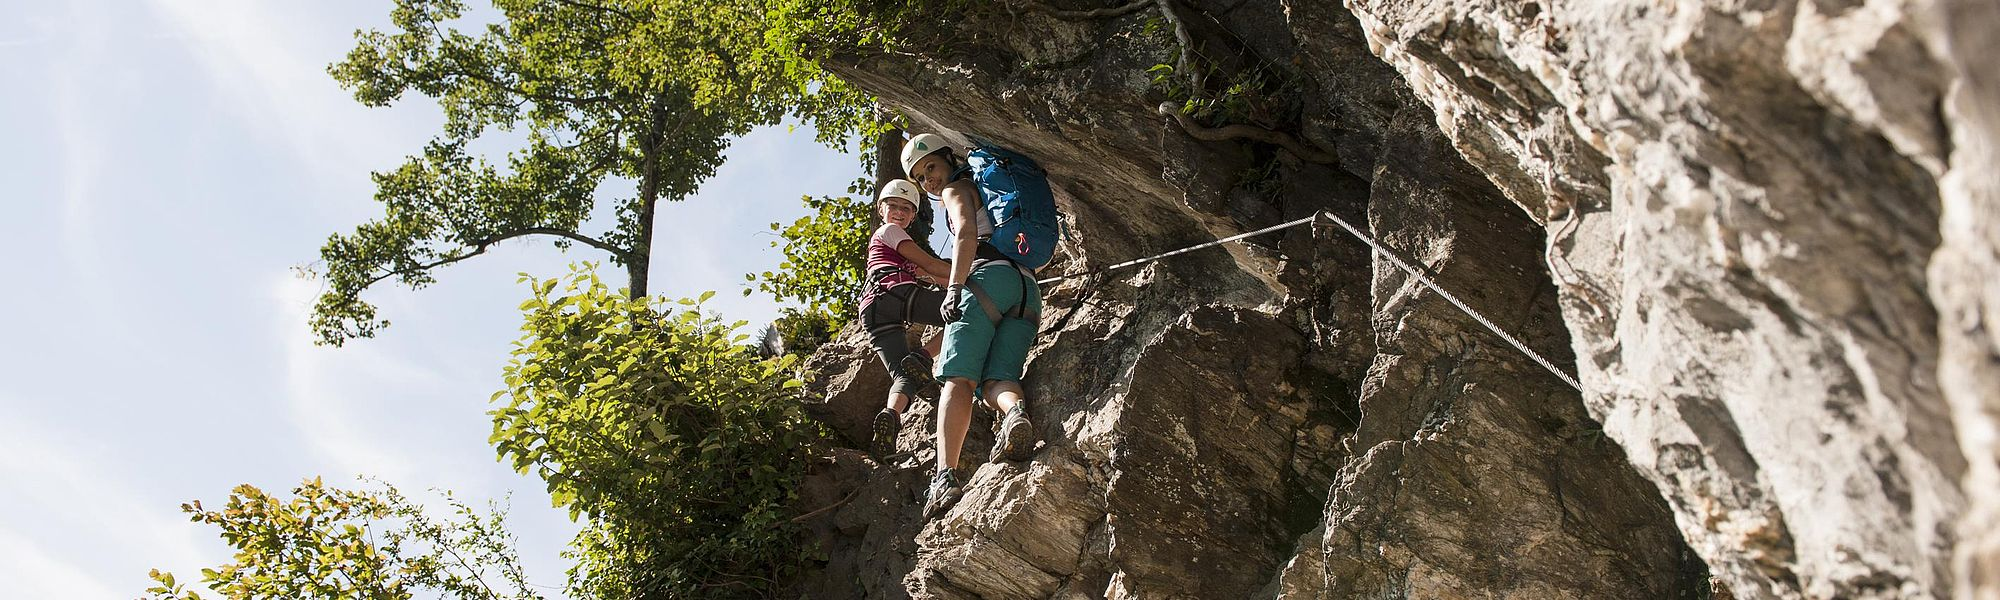 In the Zillertal, there are via ferrata climbs of all difficulty levels